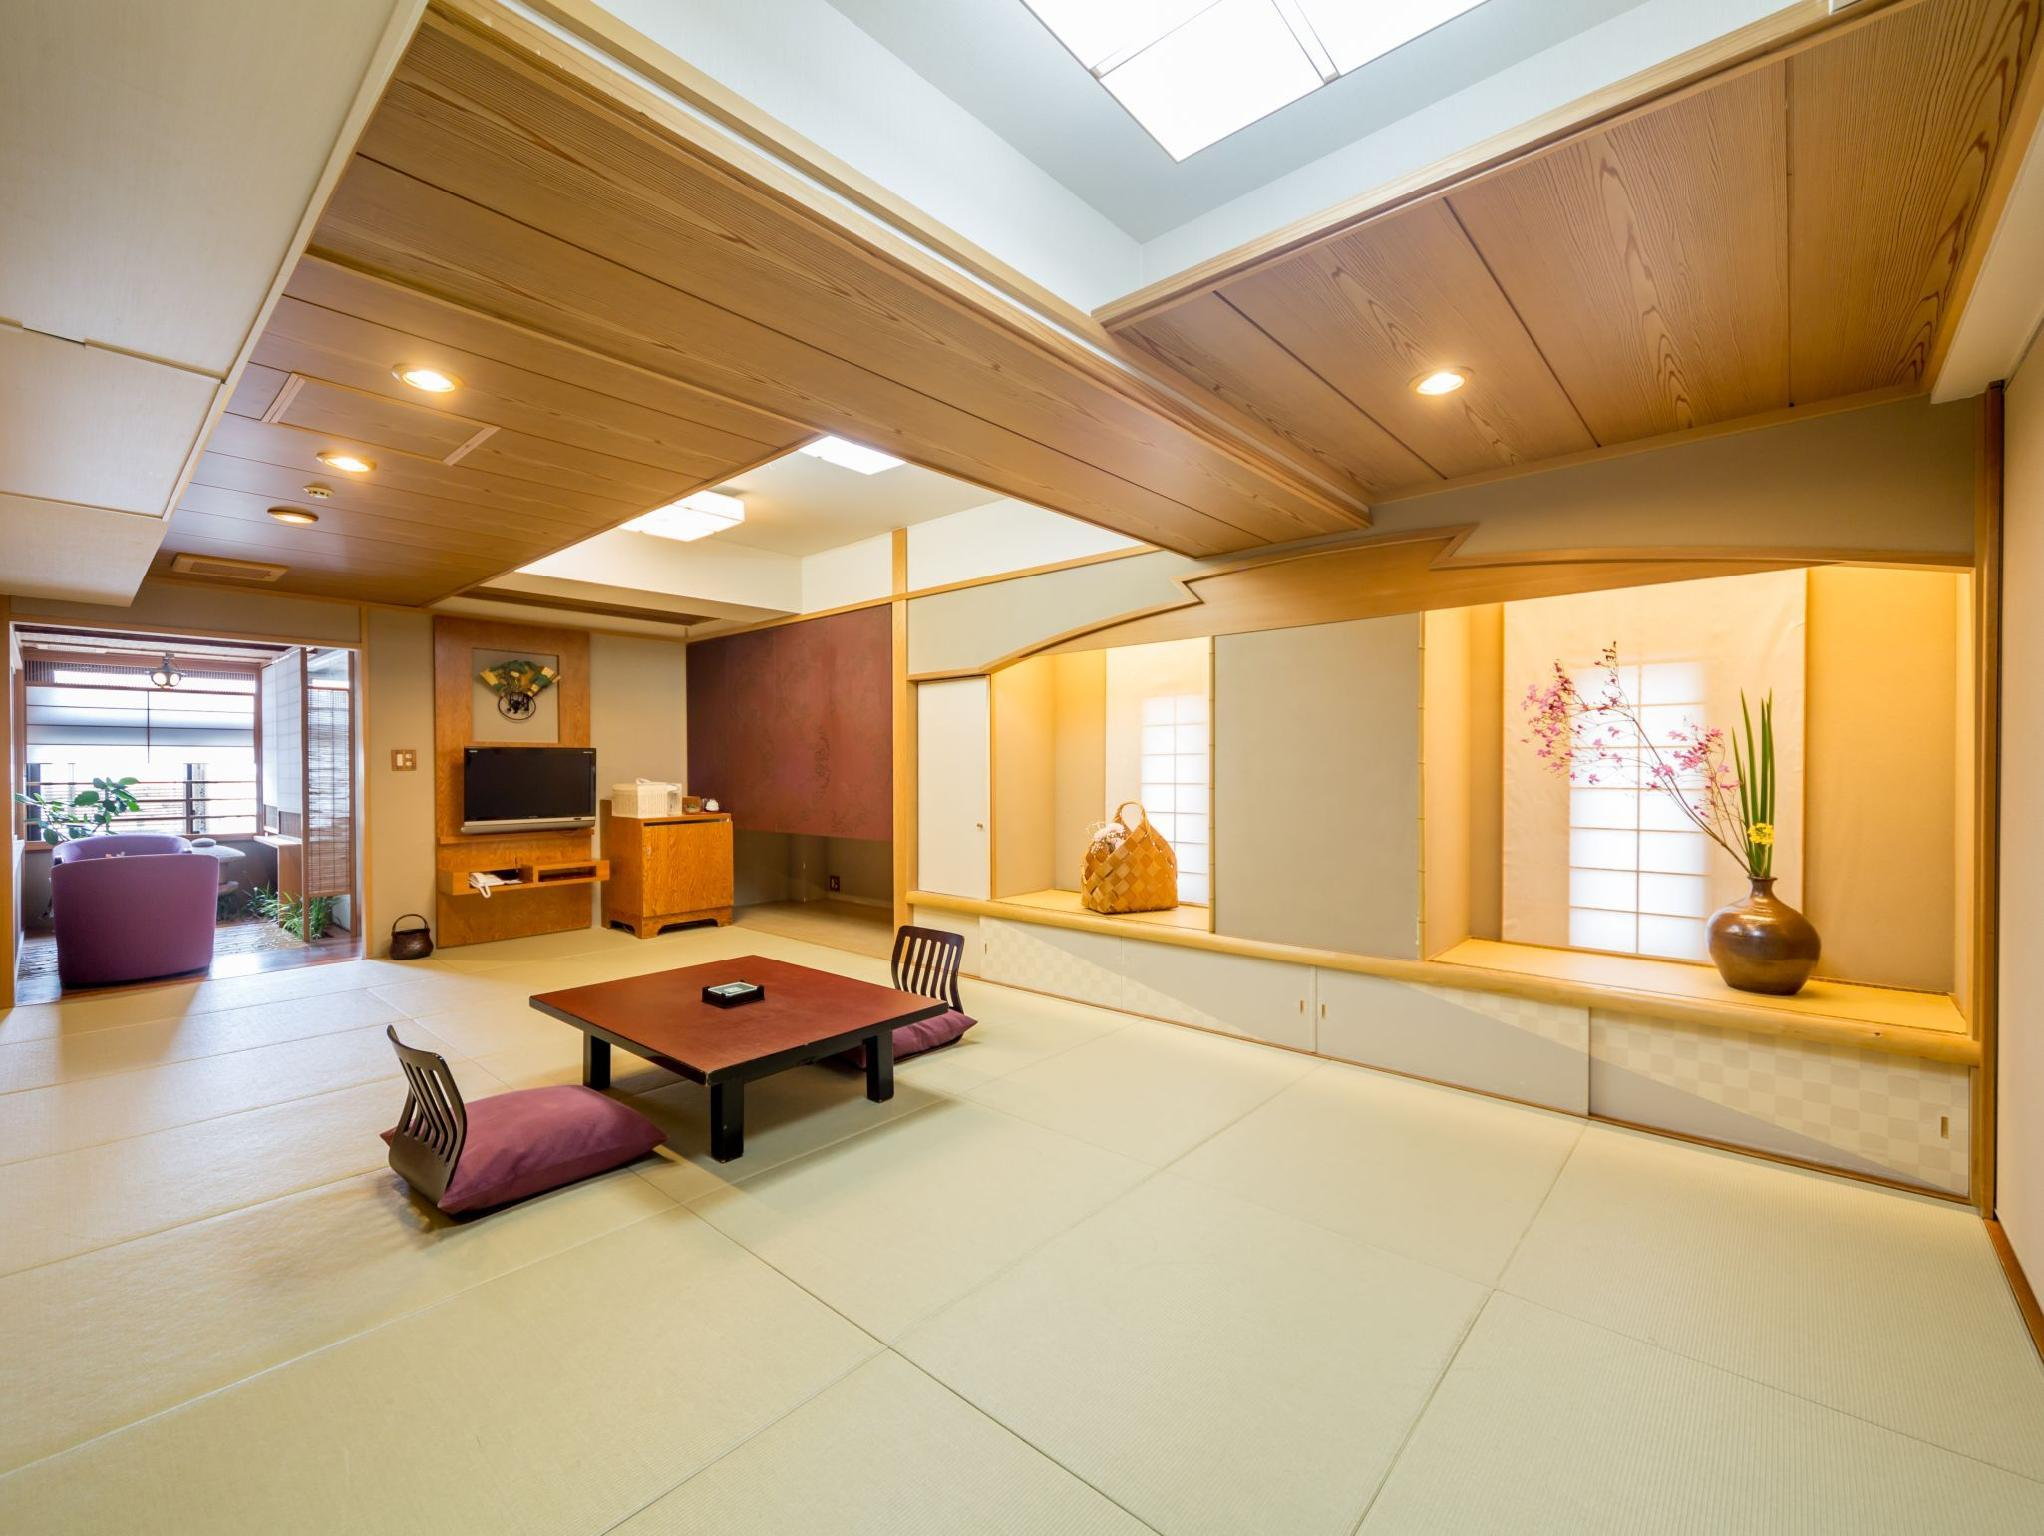 奢華日式大型客房 (Luxury Japanese Style Large Room)